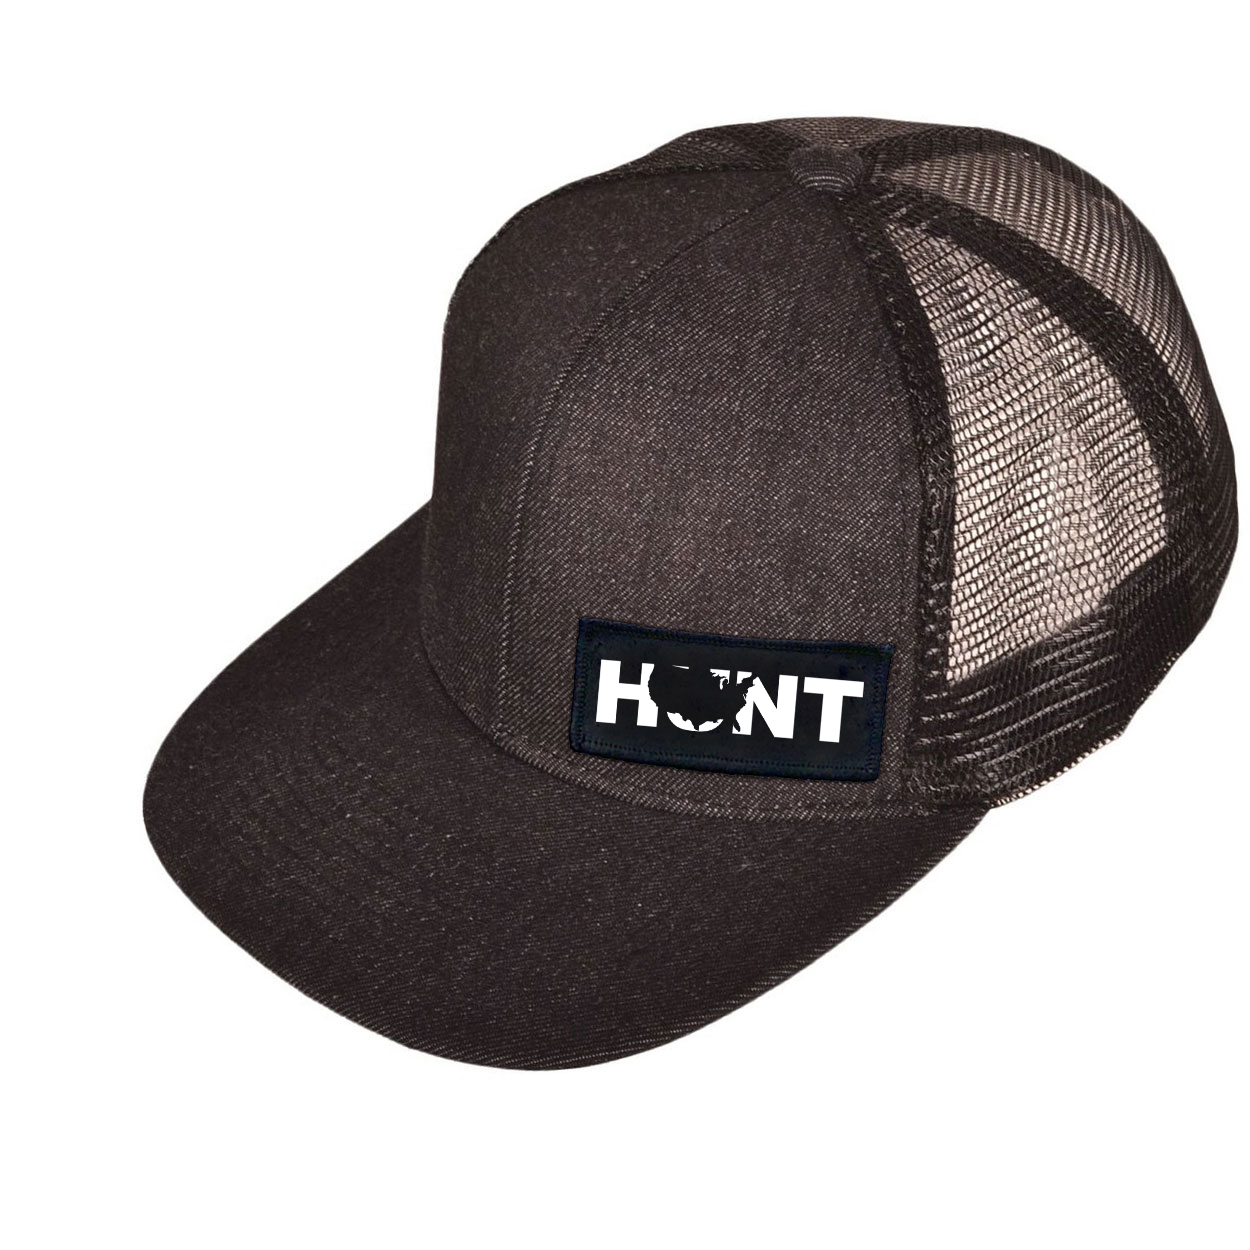 Hunt United States Night Out Woven Patch Snapback Flat Brim Hat Black Denim (White Logo)